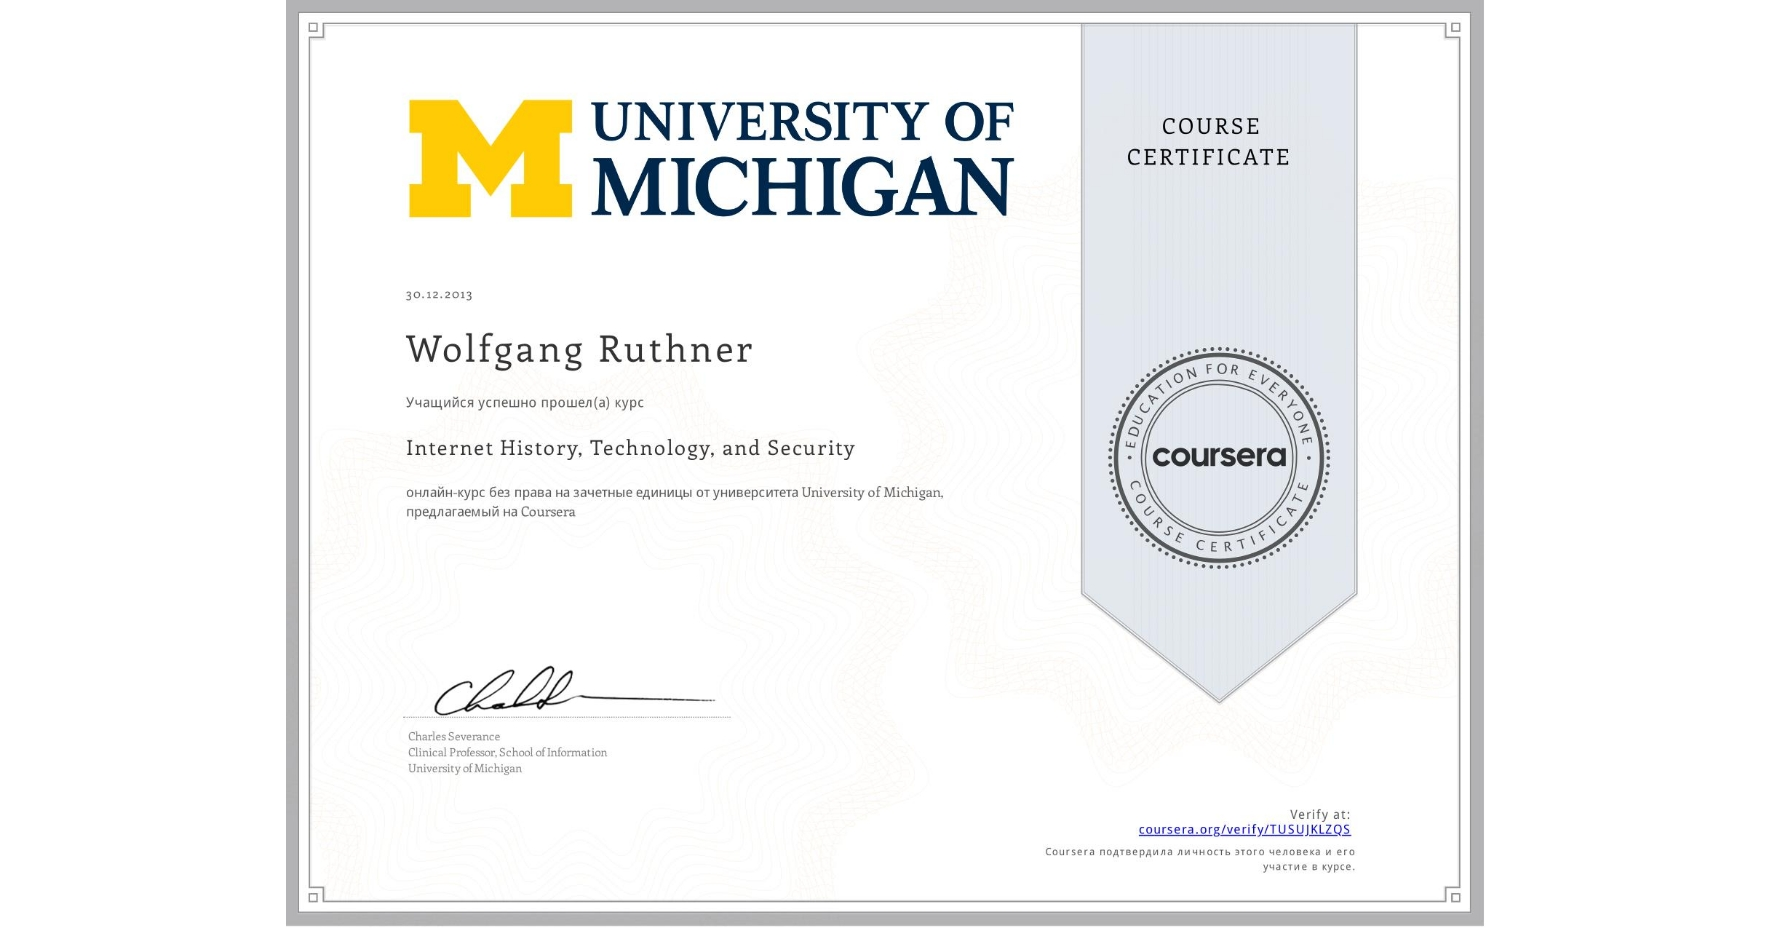 View certificate for Wolfgang Ruthner, Internet History, Technology, and Security, an online non-credit course authorized by University of Michigan and offered through Coursera